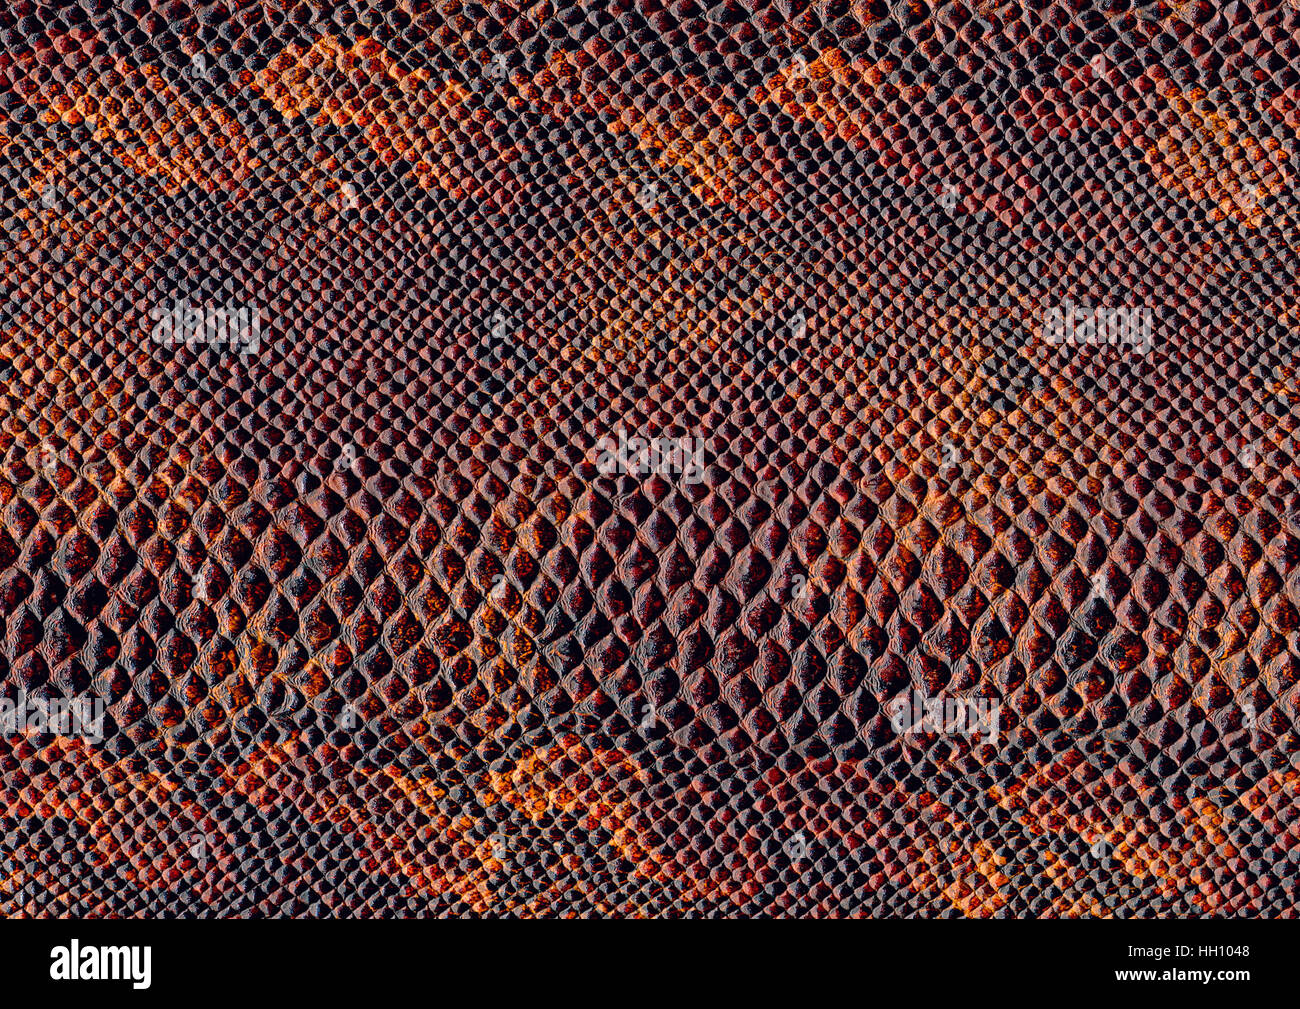 full frame scaled abstract brown patterned reptile skin surface - Stock Image